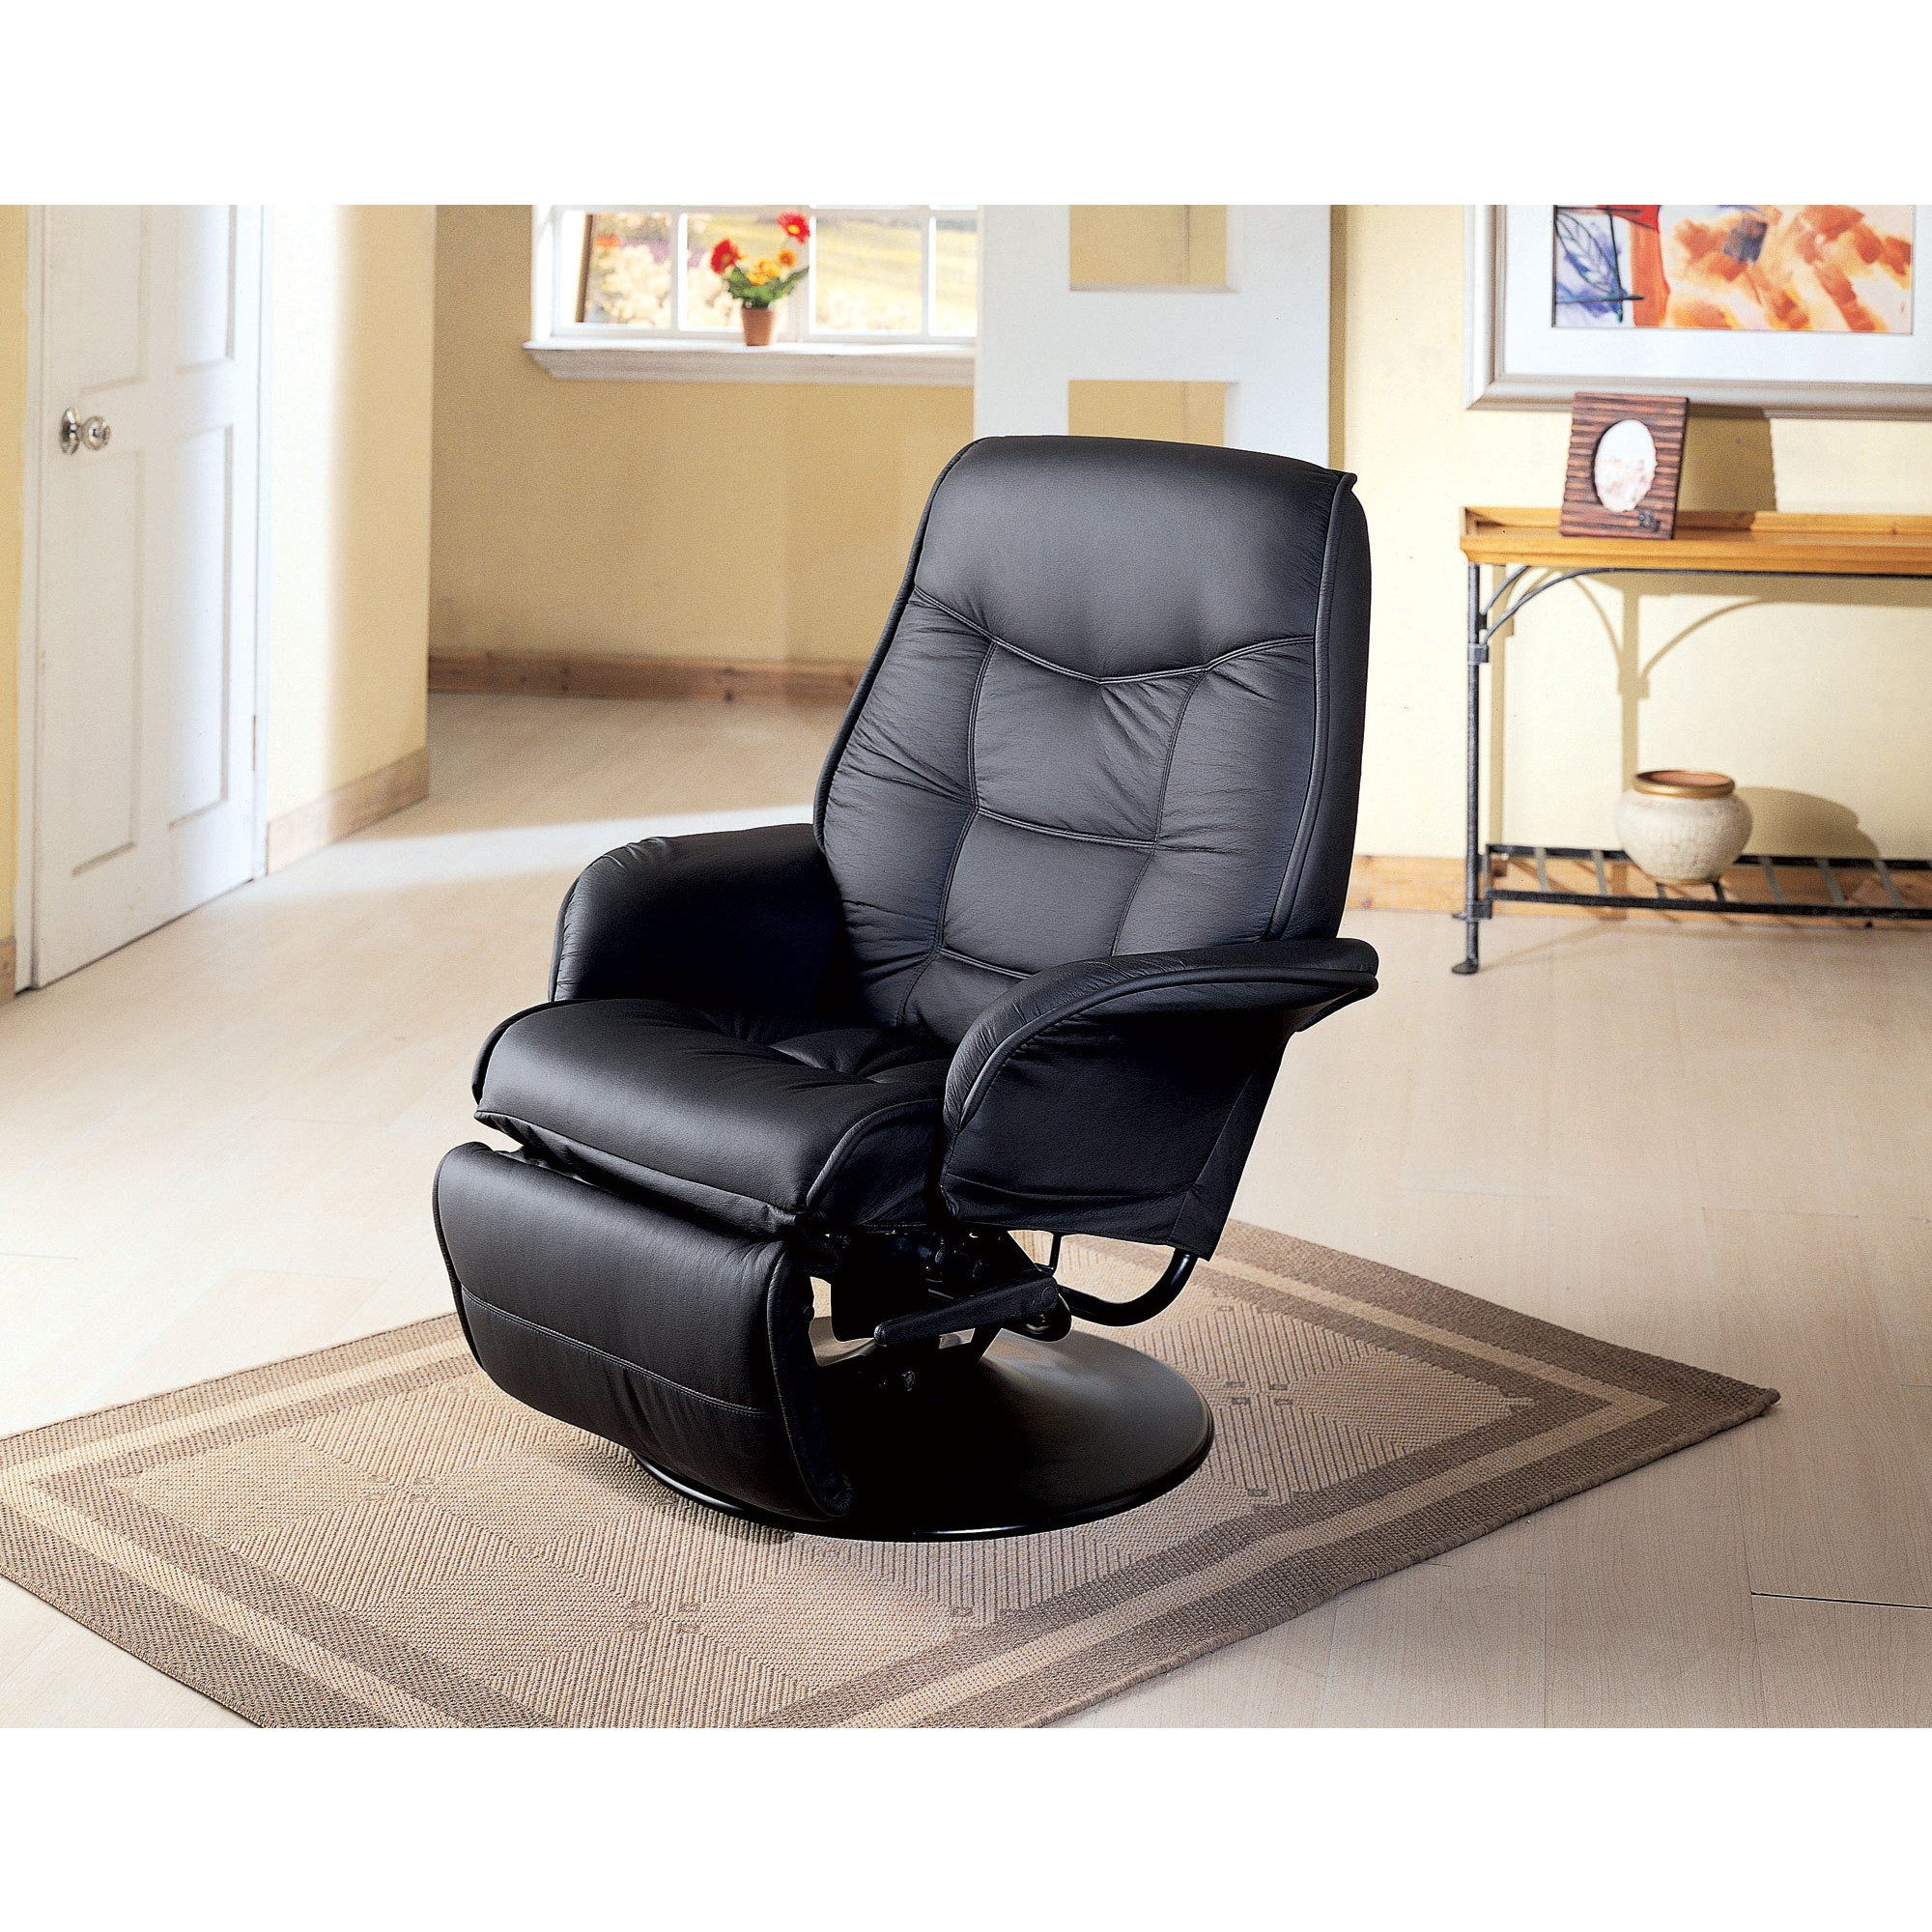 Superb Coaster Company Leatherette Swivel Recliner Chair Off Ibusinesslaw Wood Chair Design Ideas Ibusinesslaworg